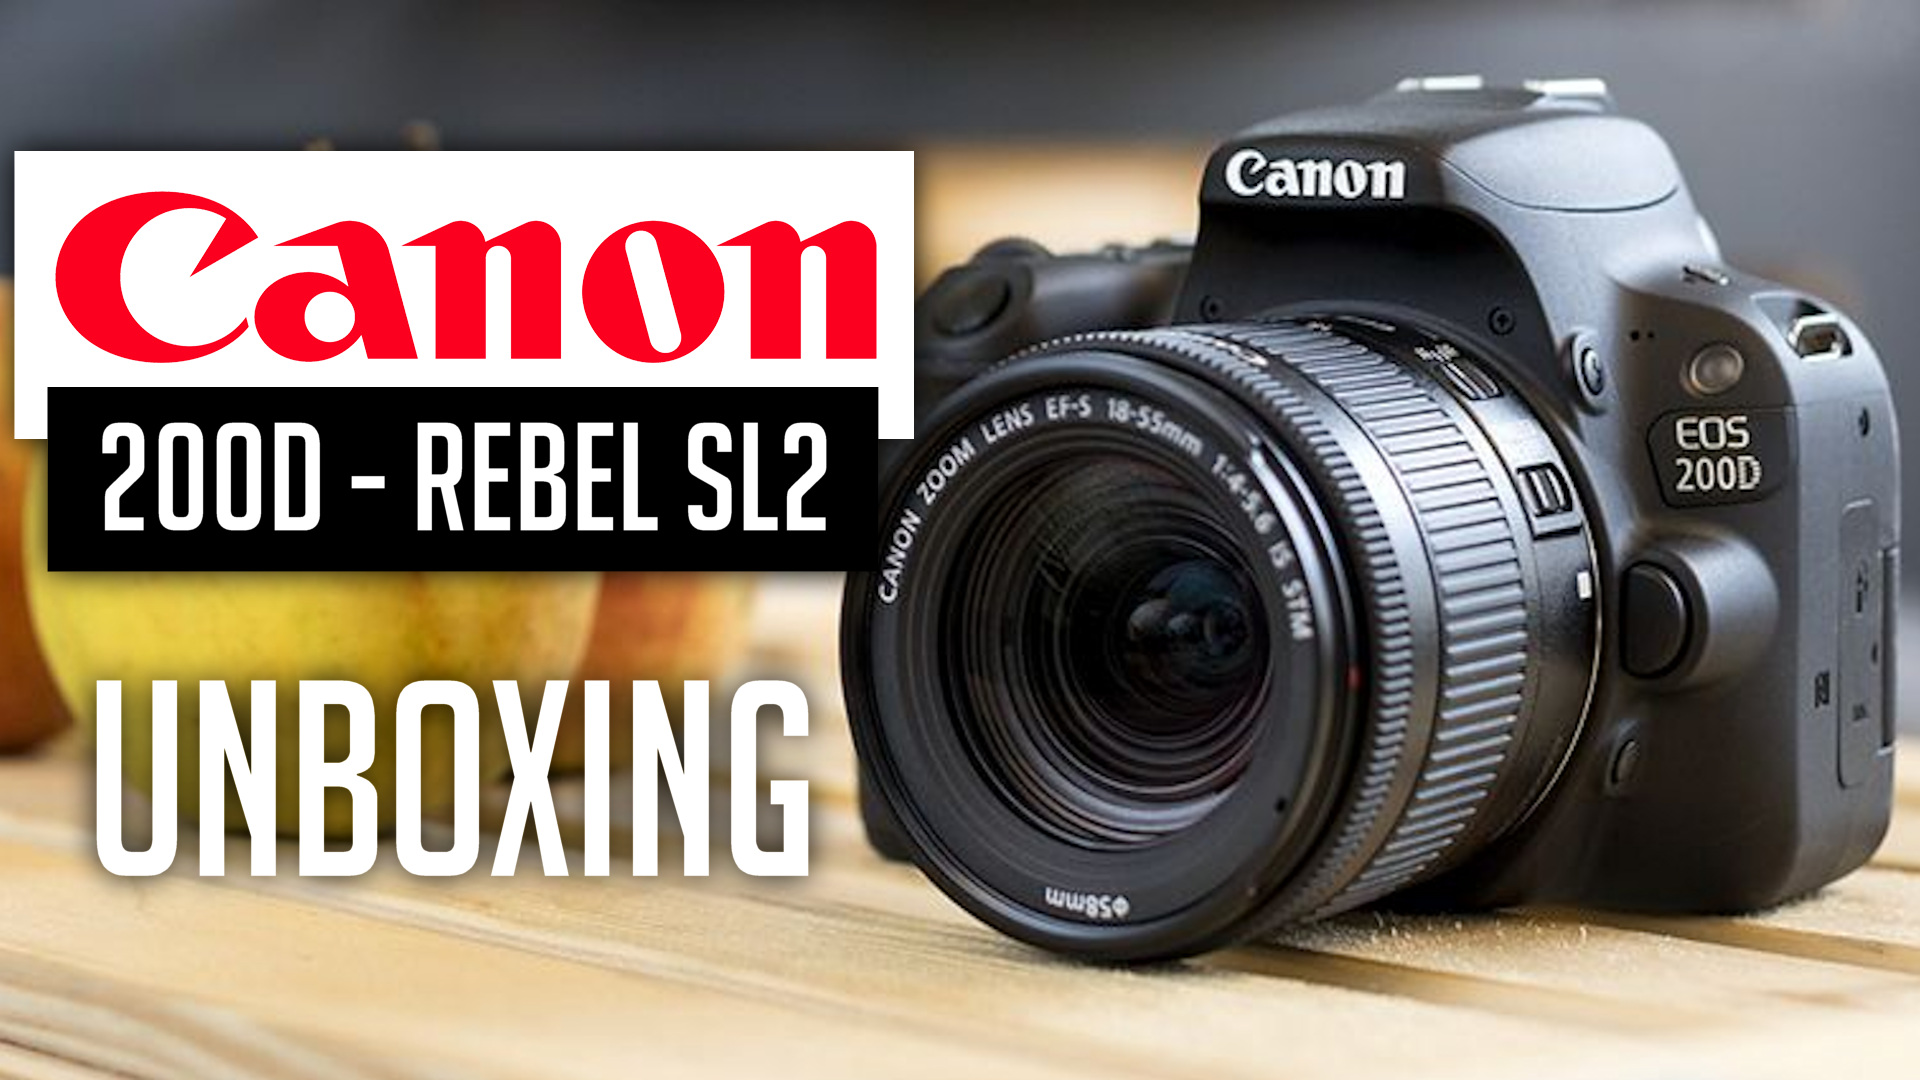 alan spicer,Canon EOS 200D,canon eos 200d unboxing,canon eos 200d unboxing and review,canon sl2,canon sl2 unboxing,sl2 canon,unboxing canon sl2,canon rebel sl2 unboxing,canon 200d unboxing,canon eos,dual pixel af,canon sl2 200d unboxing,canon eos sl2 200d,canon 200d,rebel sl2,canon eos rebel sl2,canon sl2 camera,best budget canon camera,canon sl2 video,unboxing,canon camera,canon camera unboxing,canon 200d sl2,dslr camera,canon rebel sl2